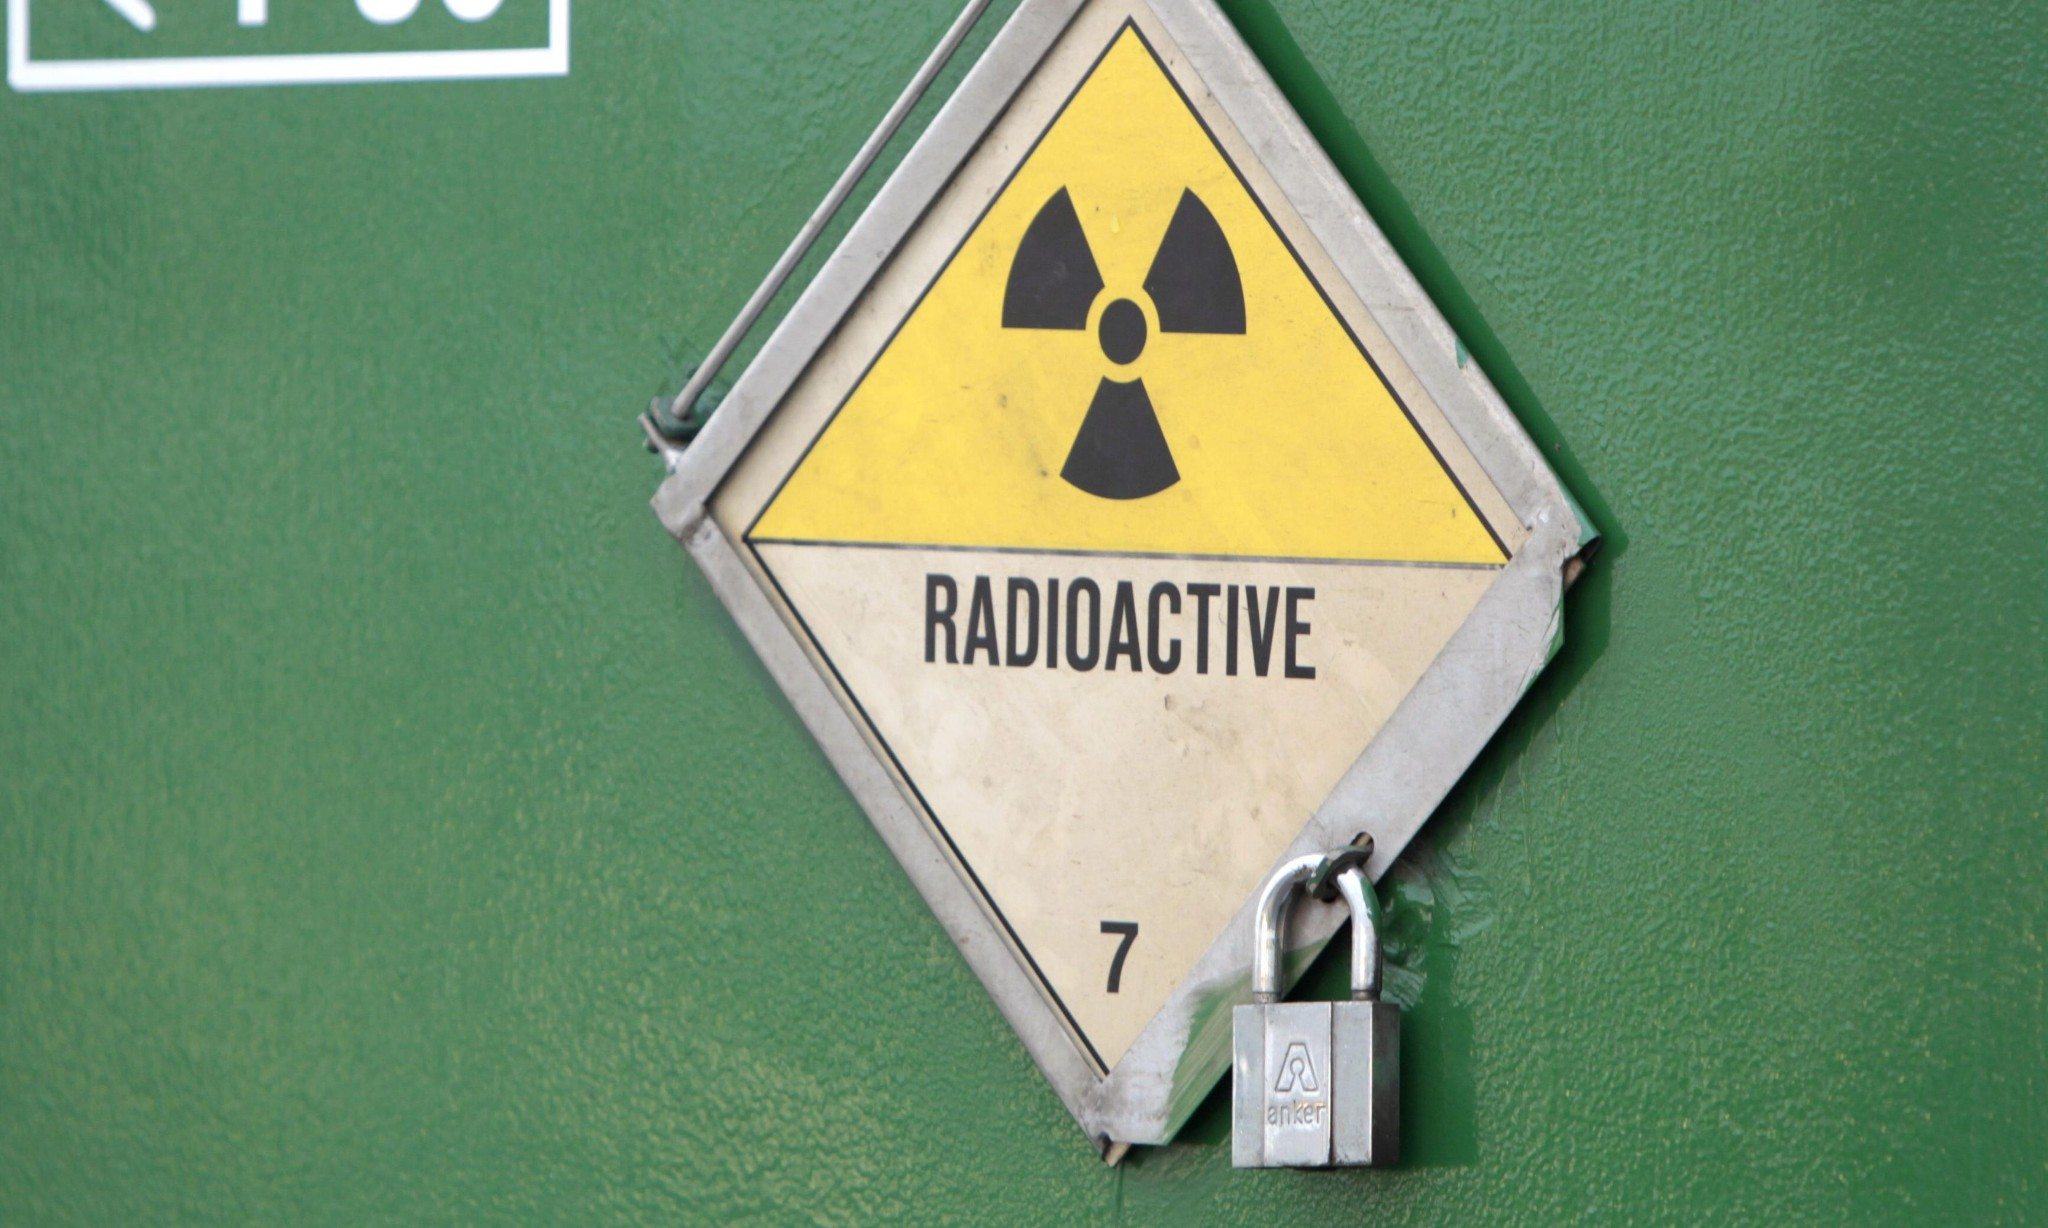 Russian nuclear facility denies it is source of high radioactivity levels